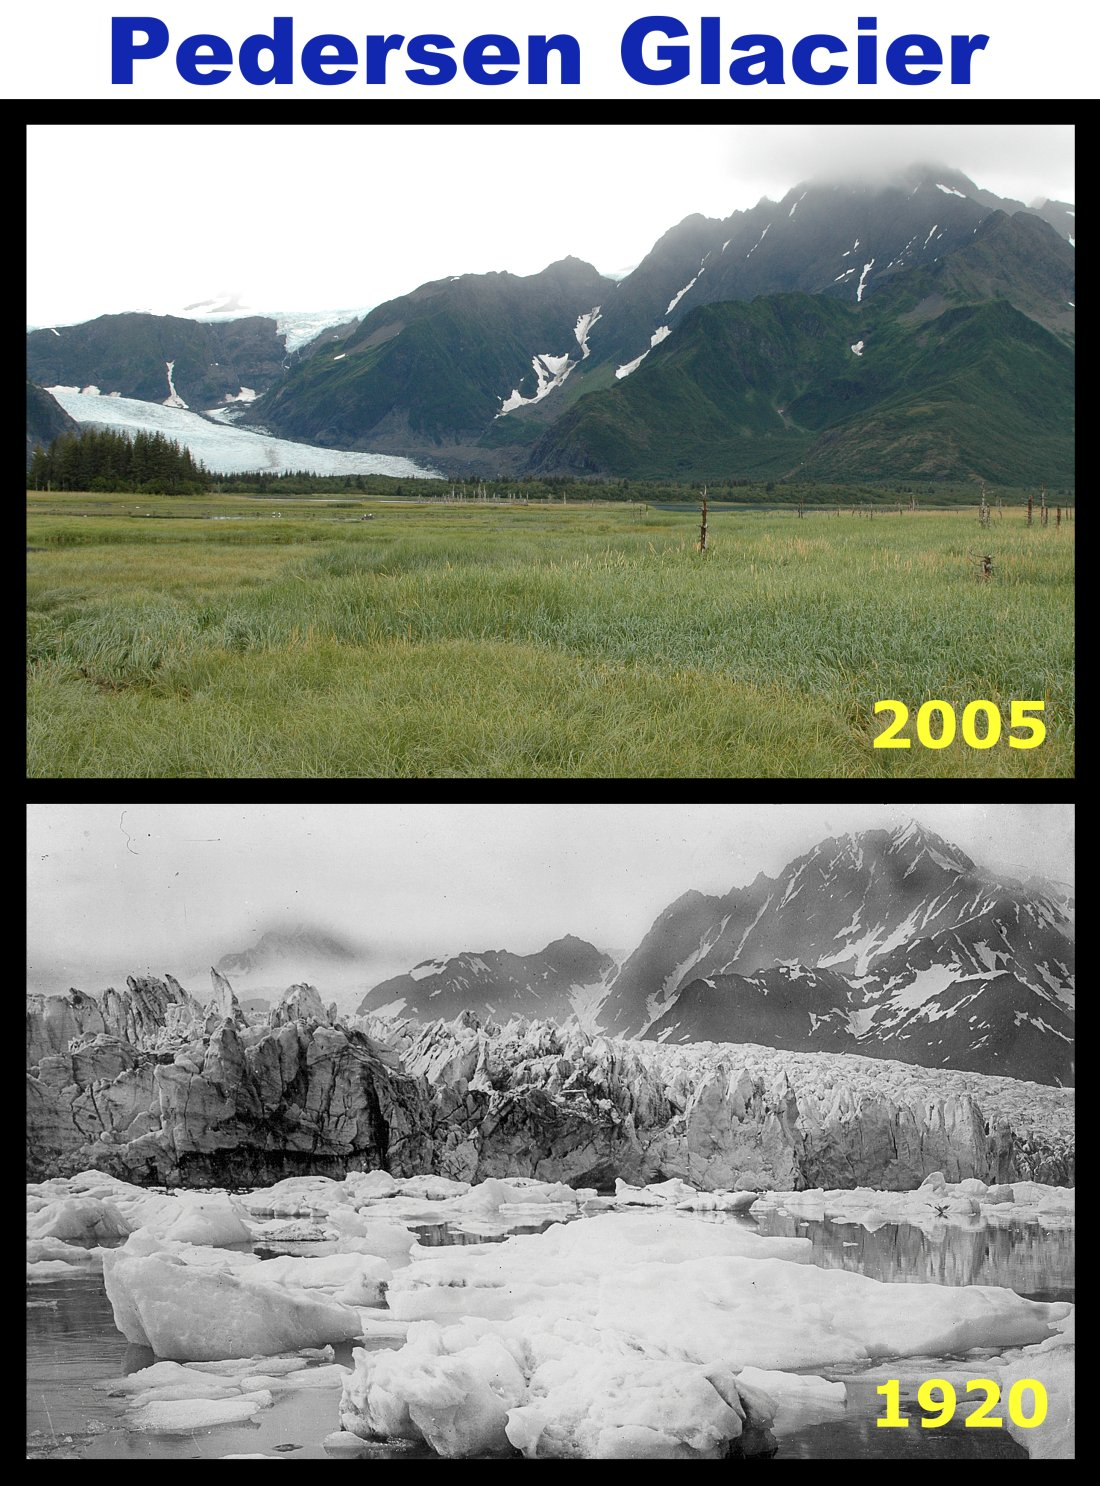 Comparison of Pedersen Glacier from 1920 to 2005